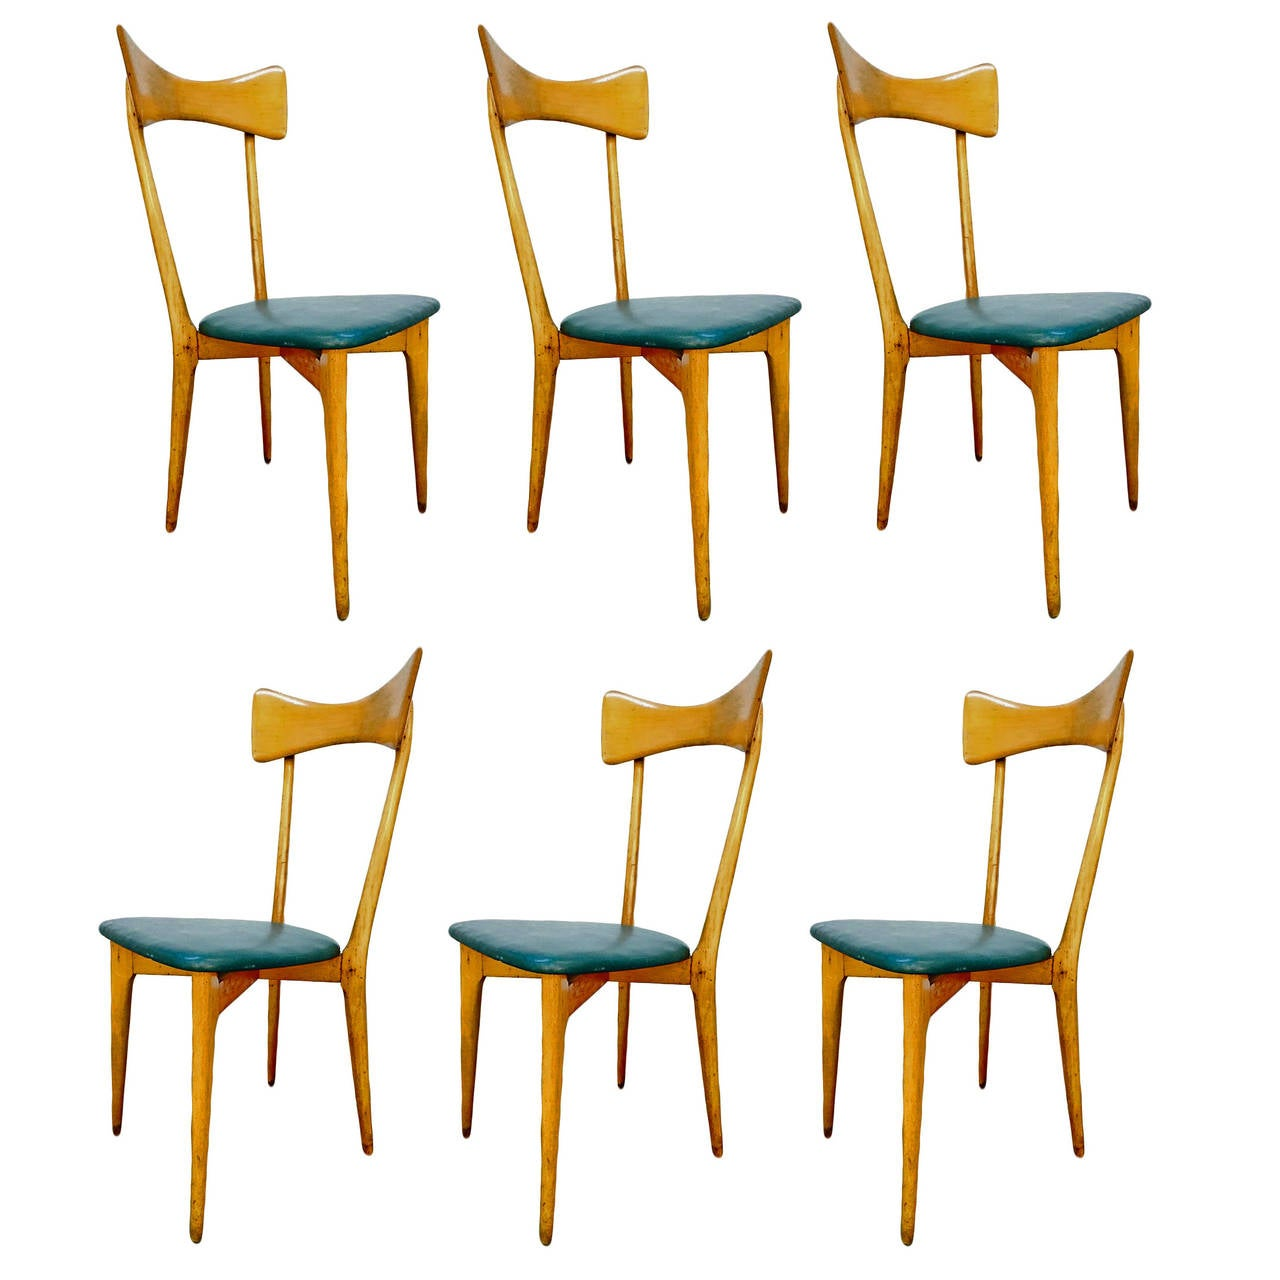 Six Chairs Designed by Ico Parisi, 1950